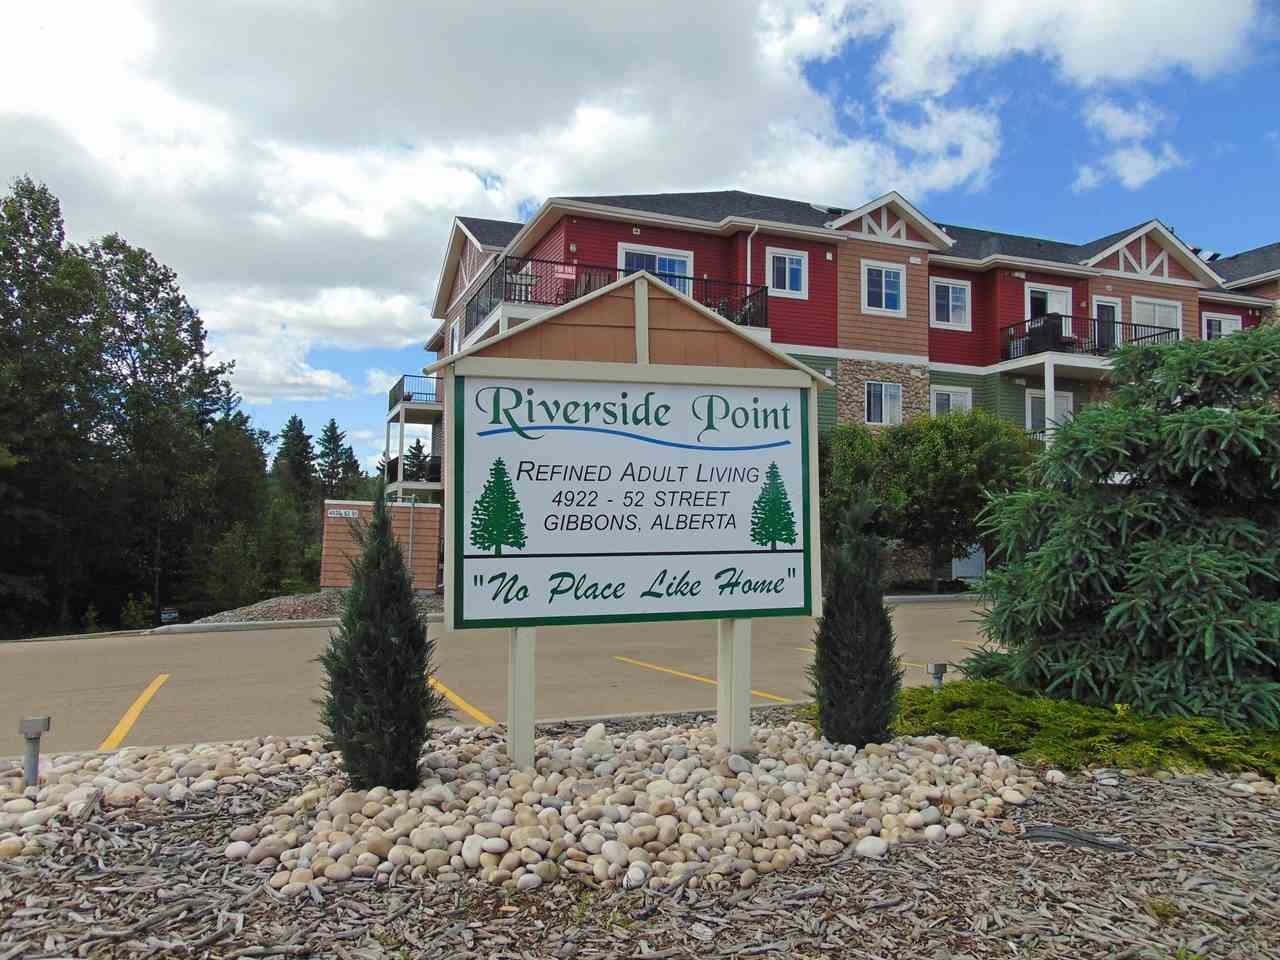 Photo 26: 203 4922 52 Street: Gibbons Condo for sale : MLS® # E4071334